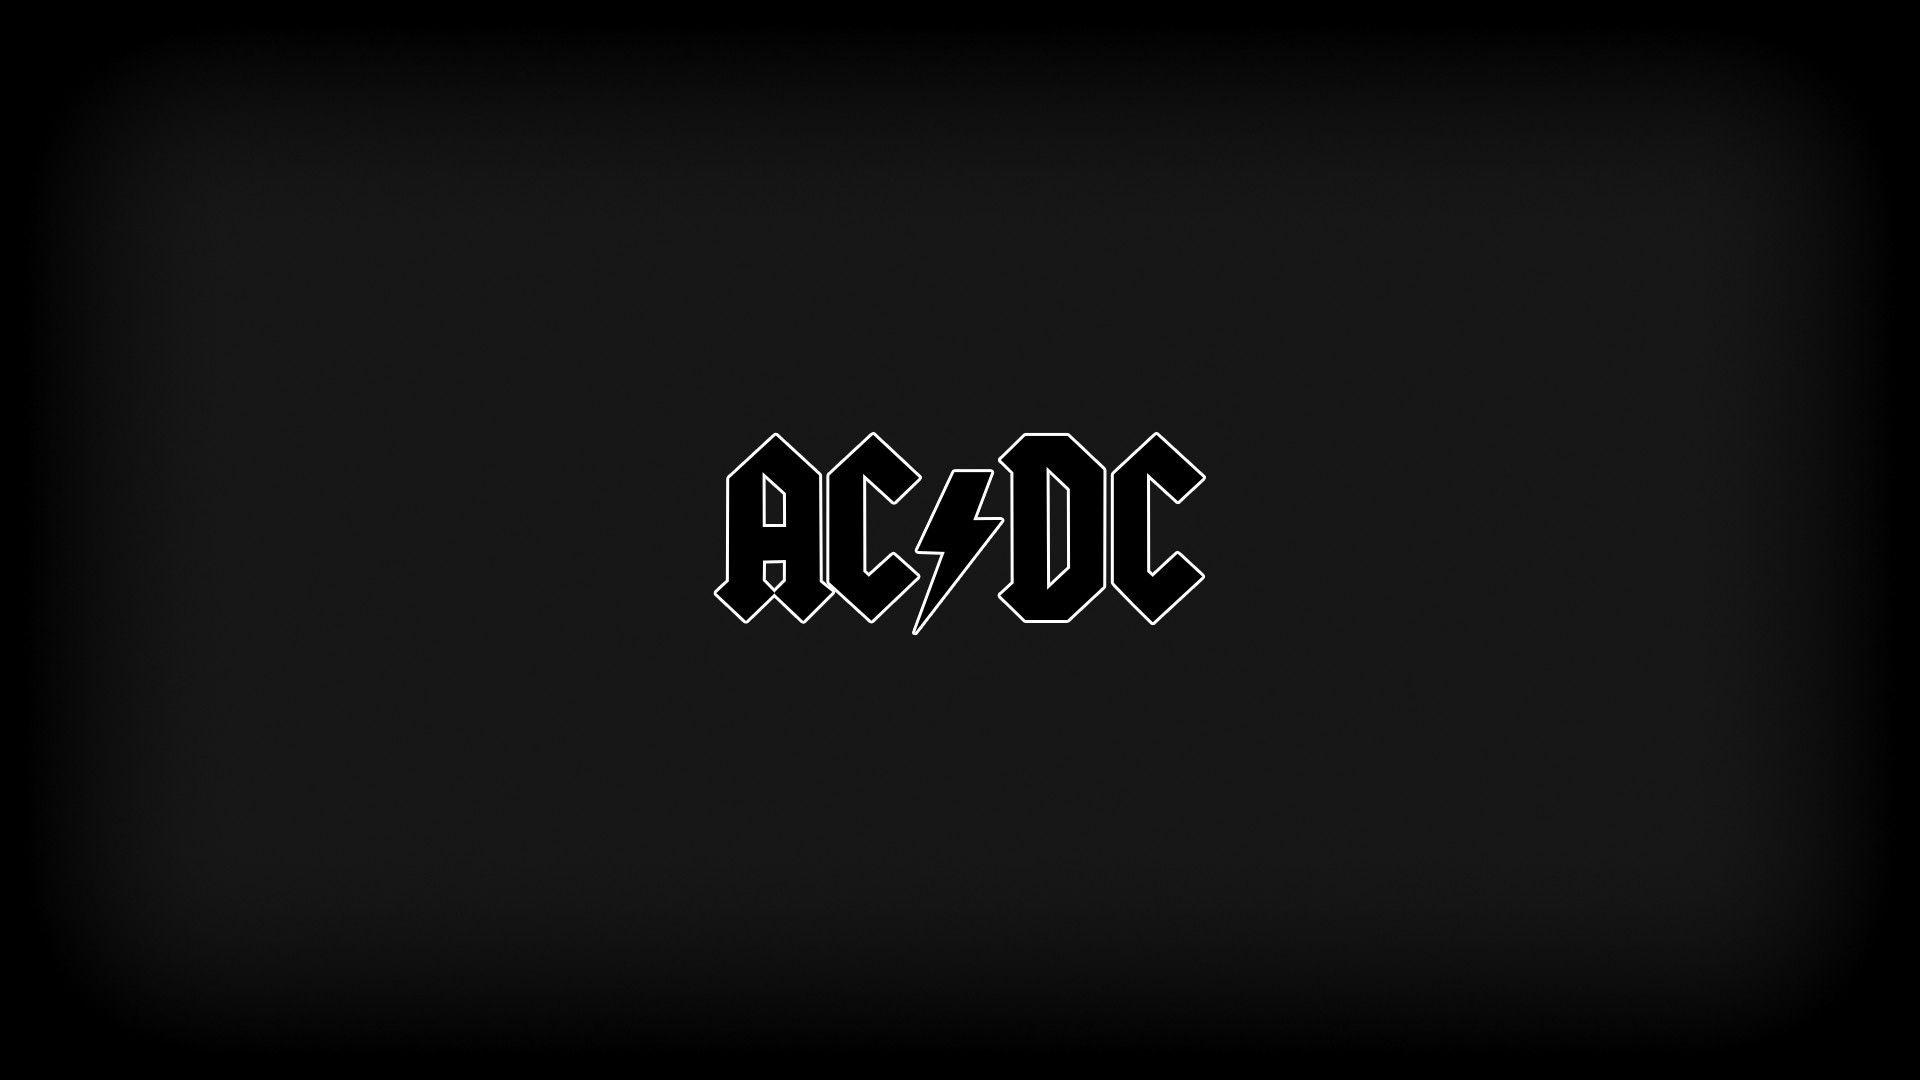 Res: 1920x1080, acdc, AC DC, Rock